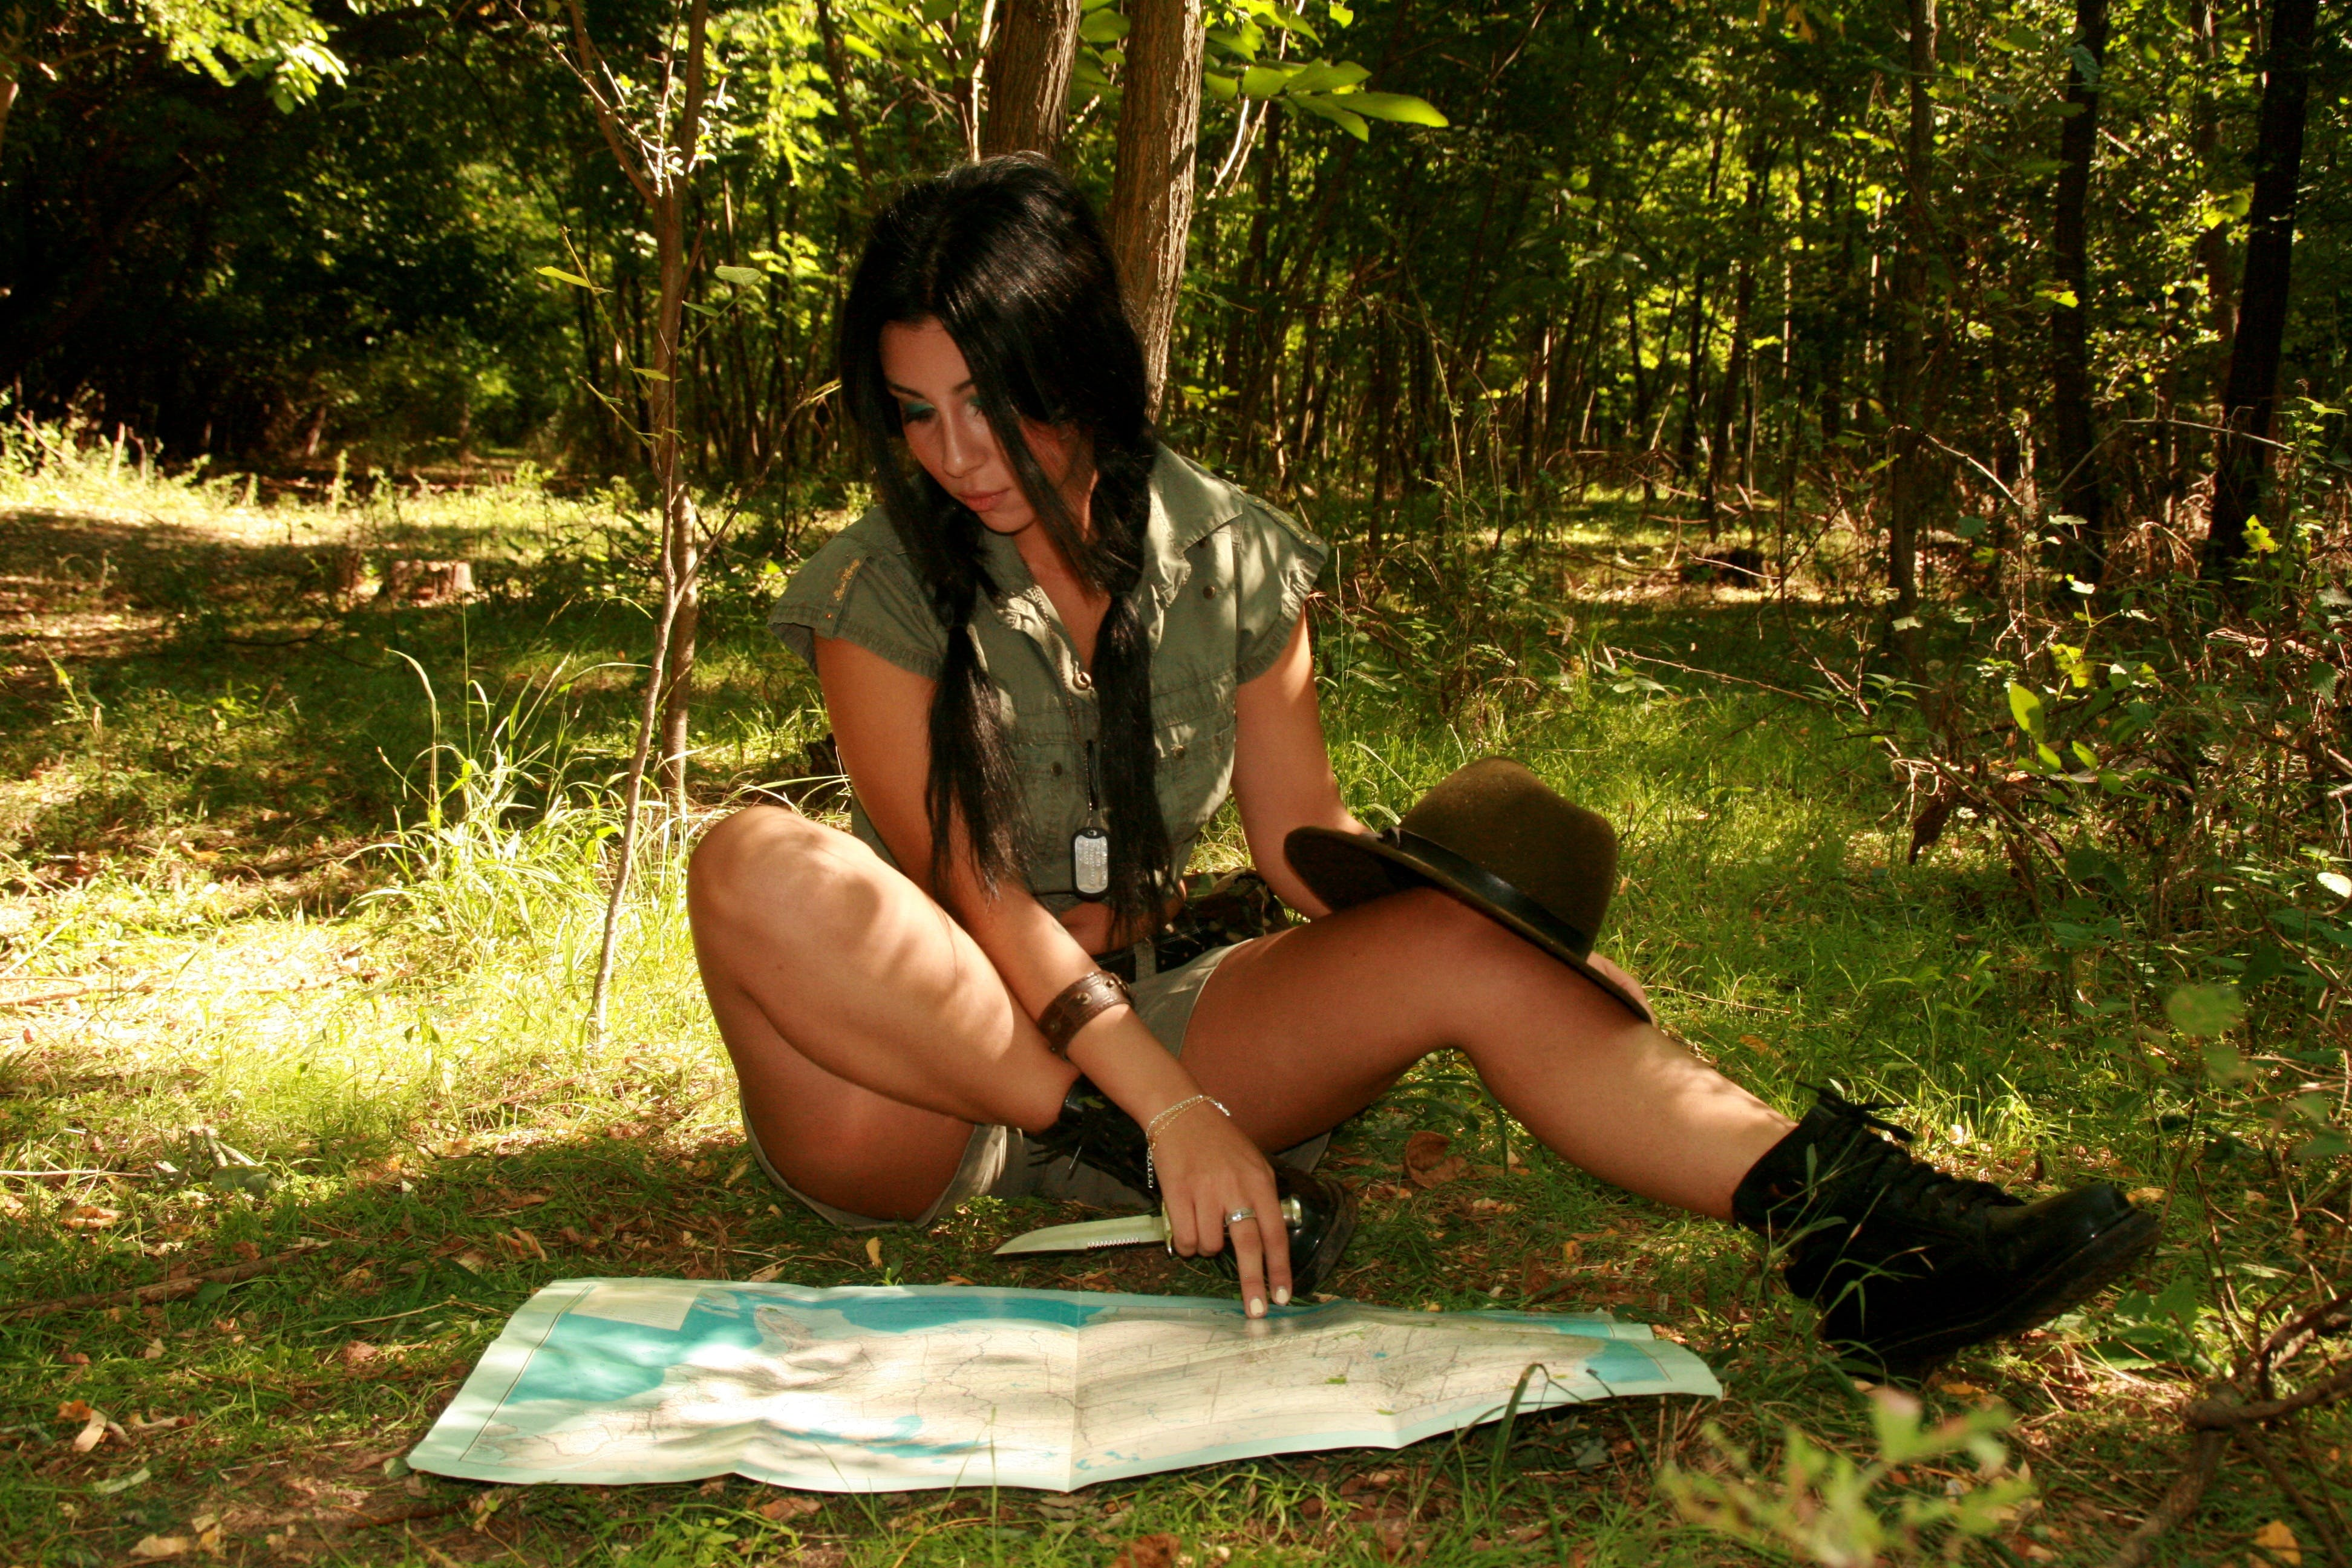 Woman Sitting on Field While Staring on Map